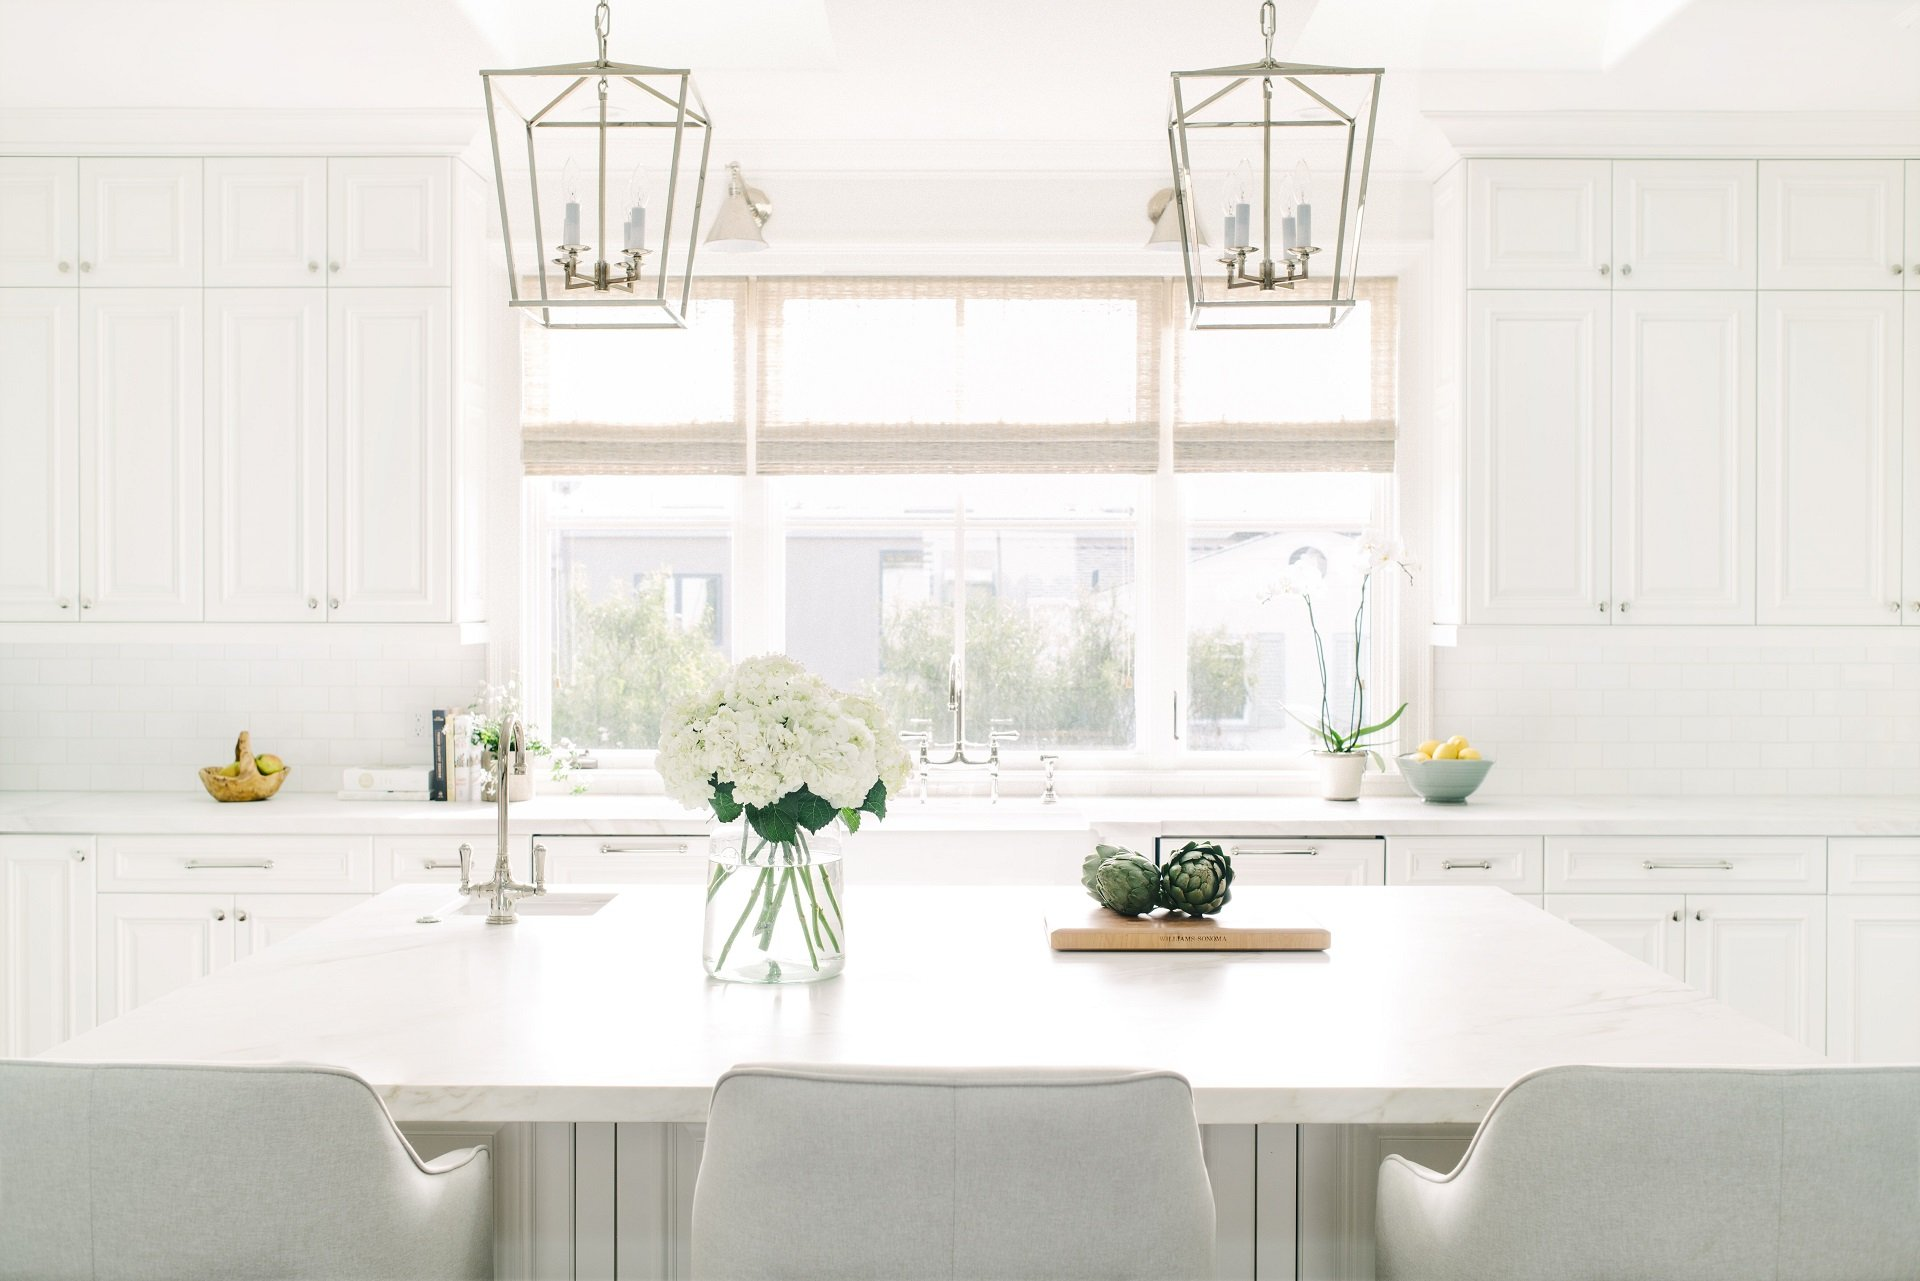 California beach house kitchen all white and sunny with modern light fixtures